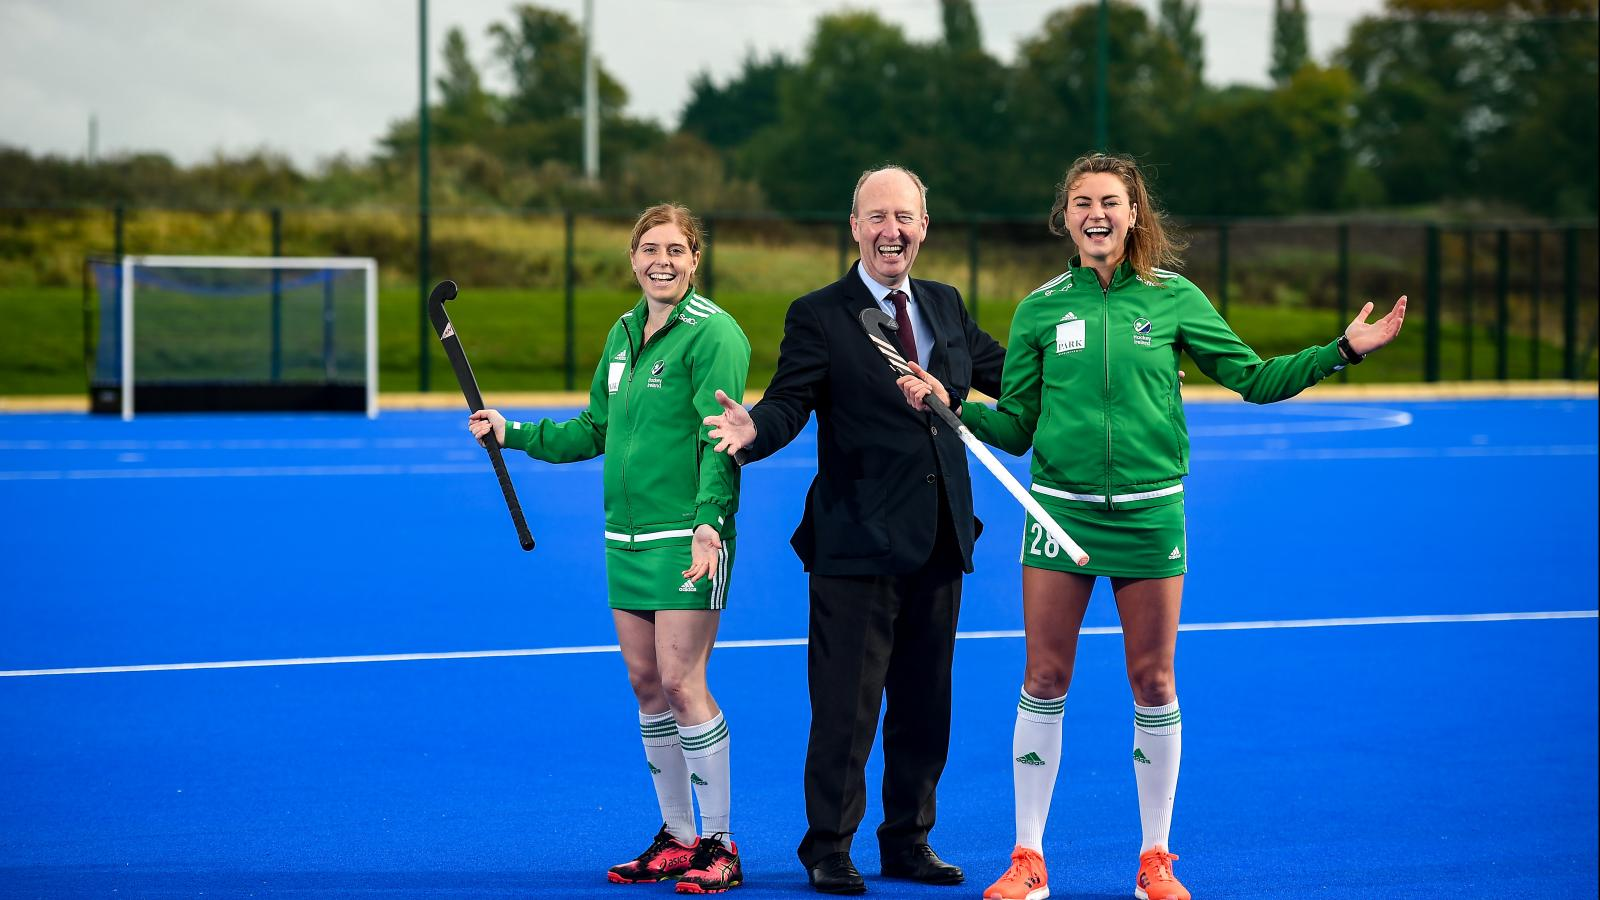 Minister for Transport, Tourism and Sport, Shane Ross TD and Irish International Hockey Players Katie Mullan and Deirdre Duke open the new state of the art hockey pitch at the Sport Ireland Campus